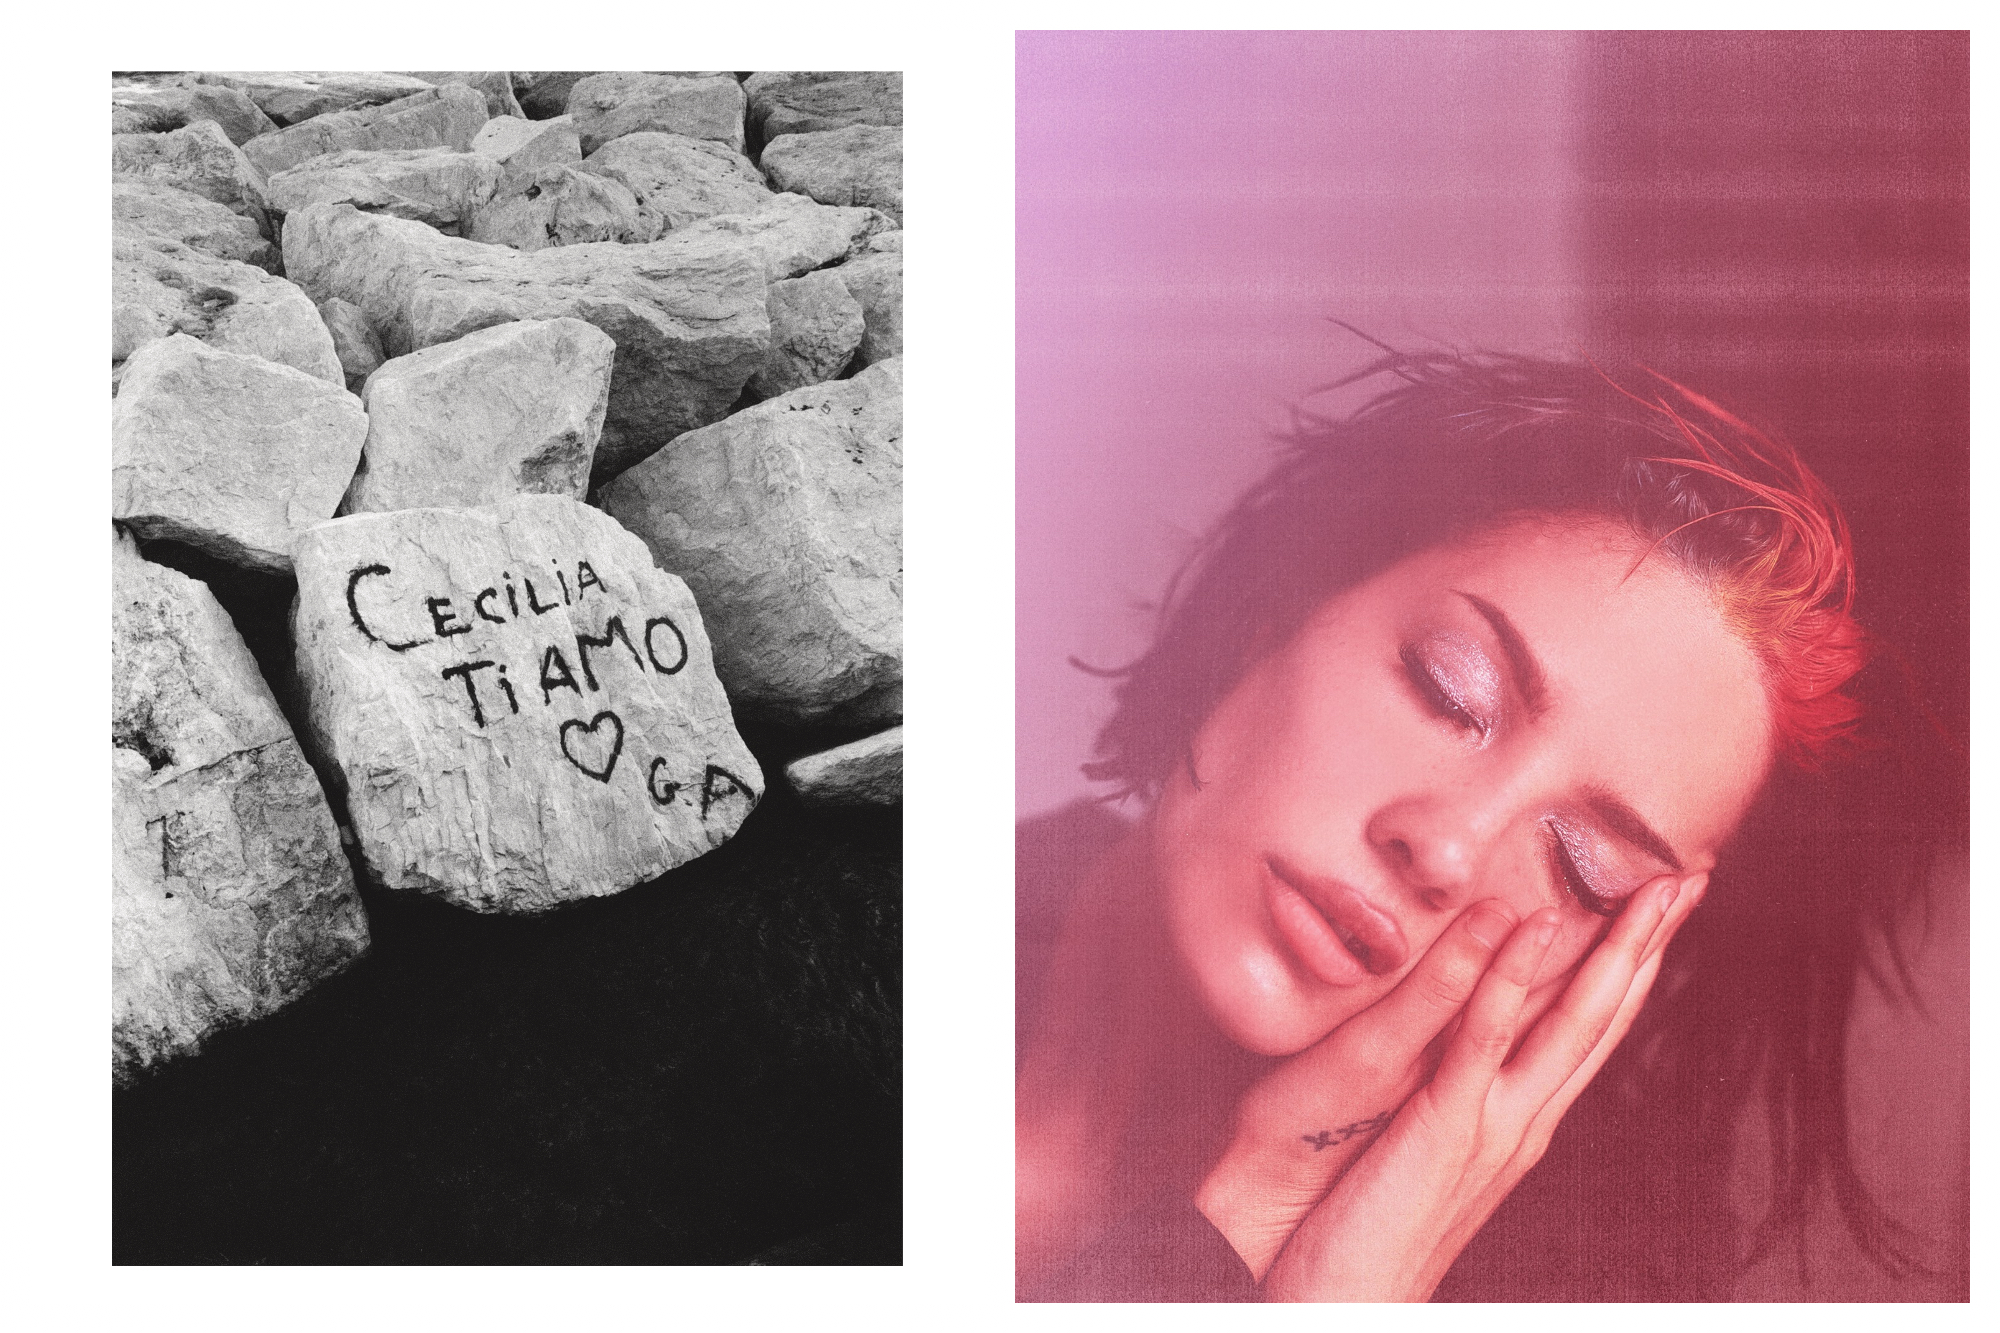 Left, names engraved in a grey rock (left). Right, a pink portrait of a girl closing er eyes with sparkly eyeshadow.